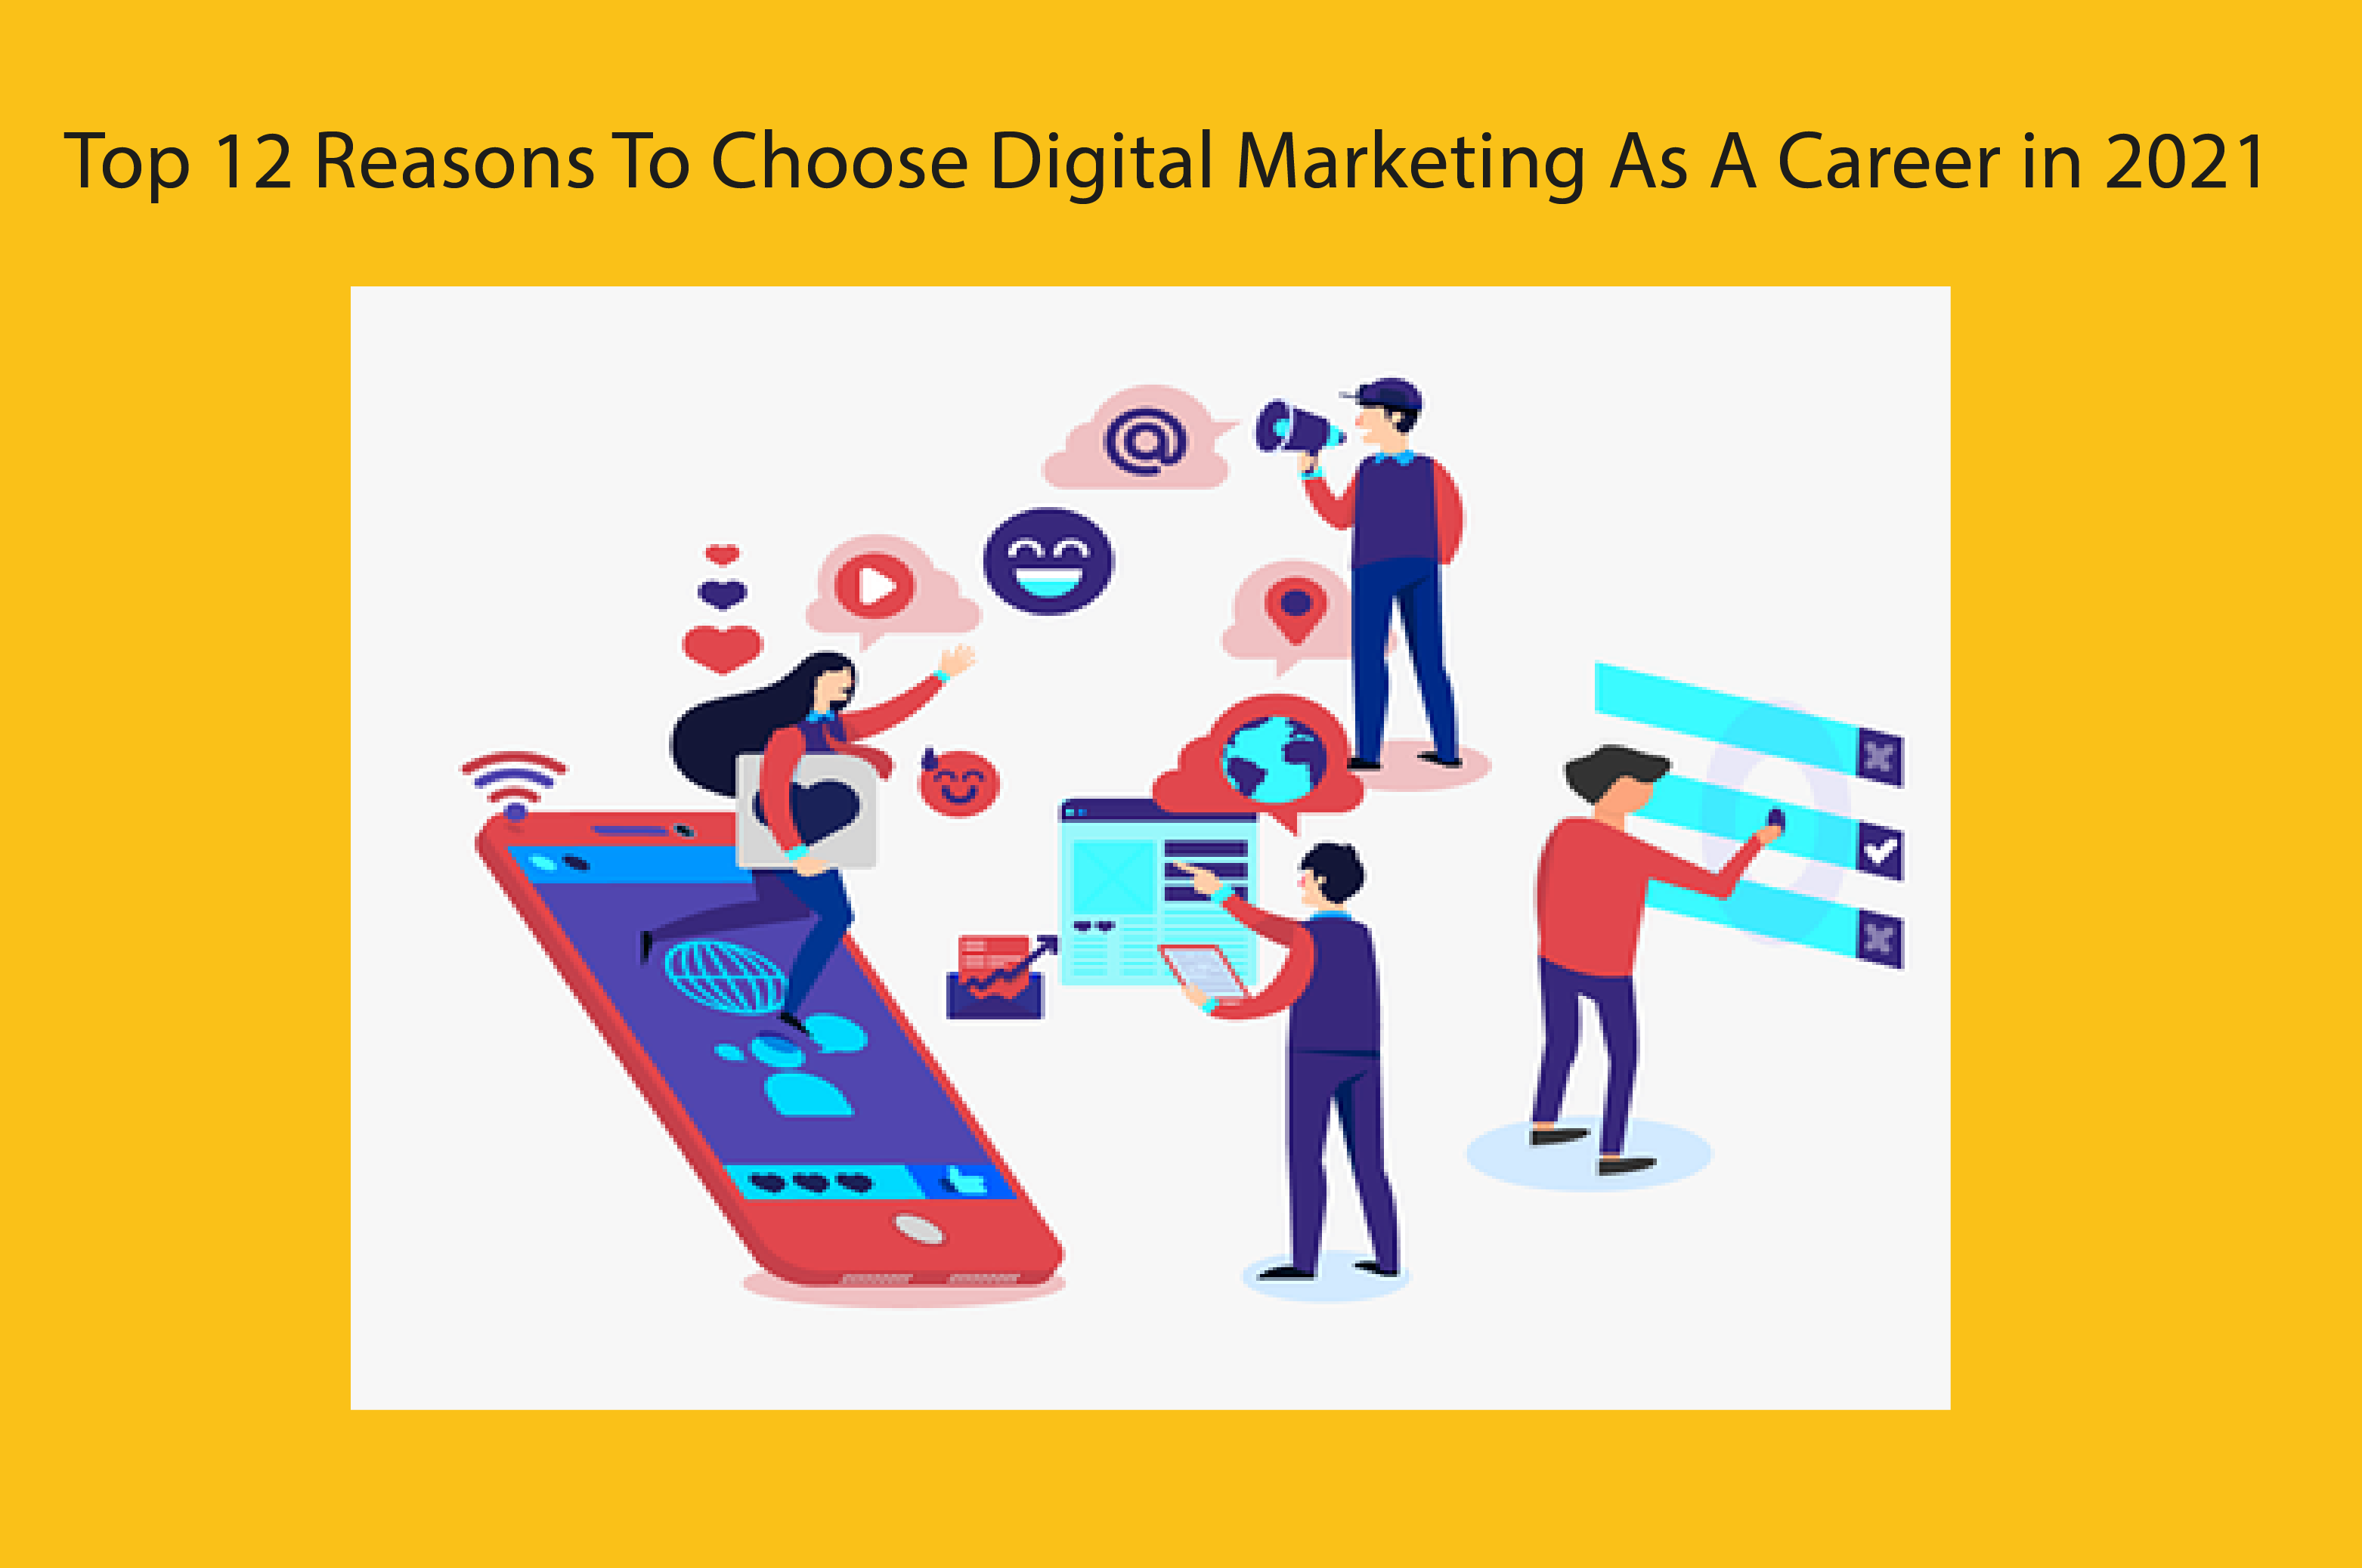 Top 12 reasons to learn digital marketing as a career